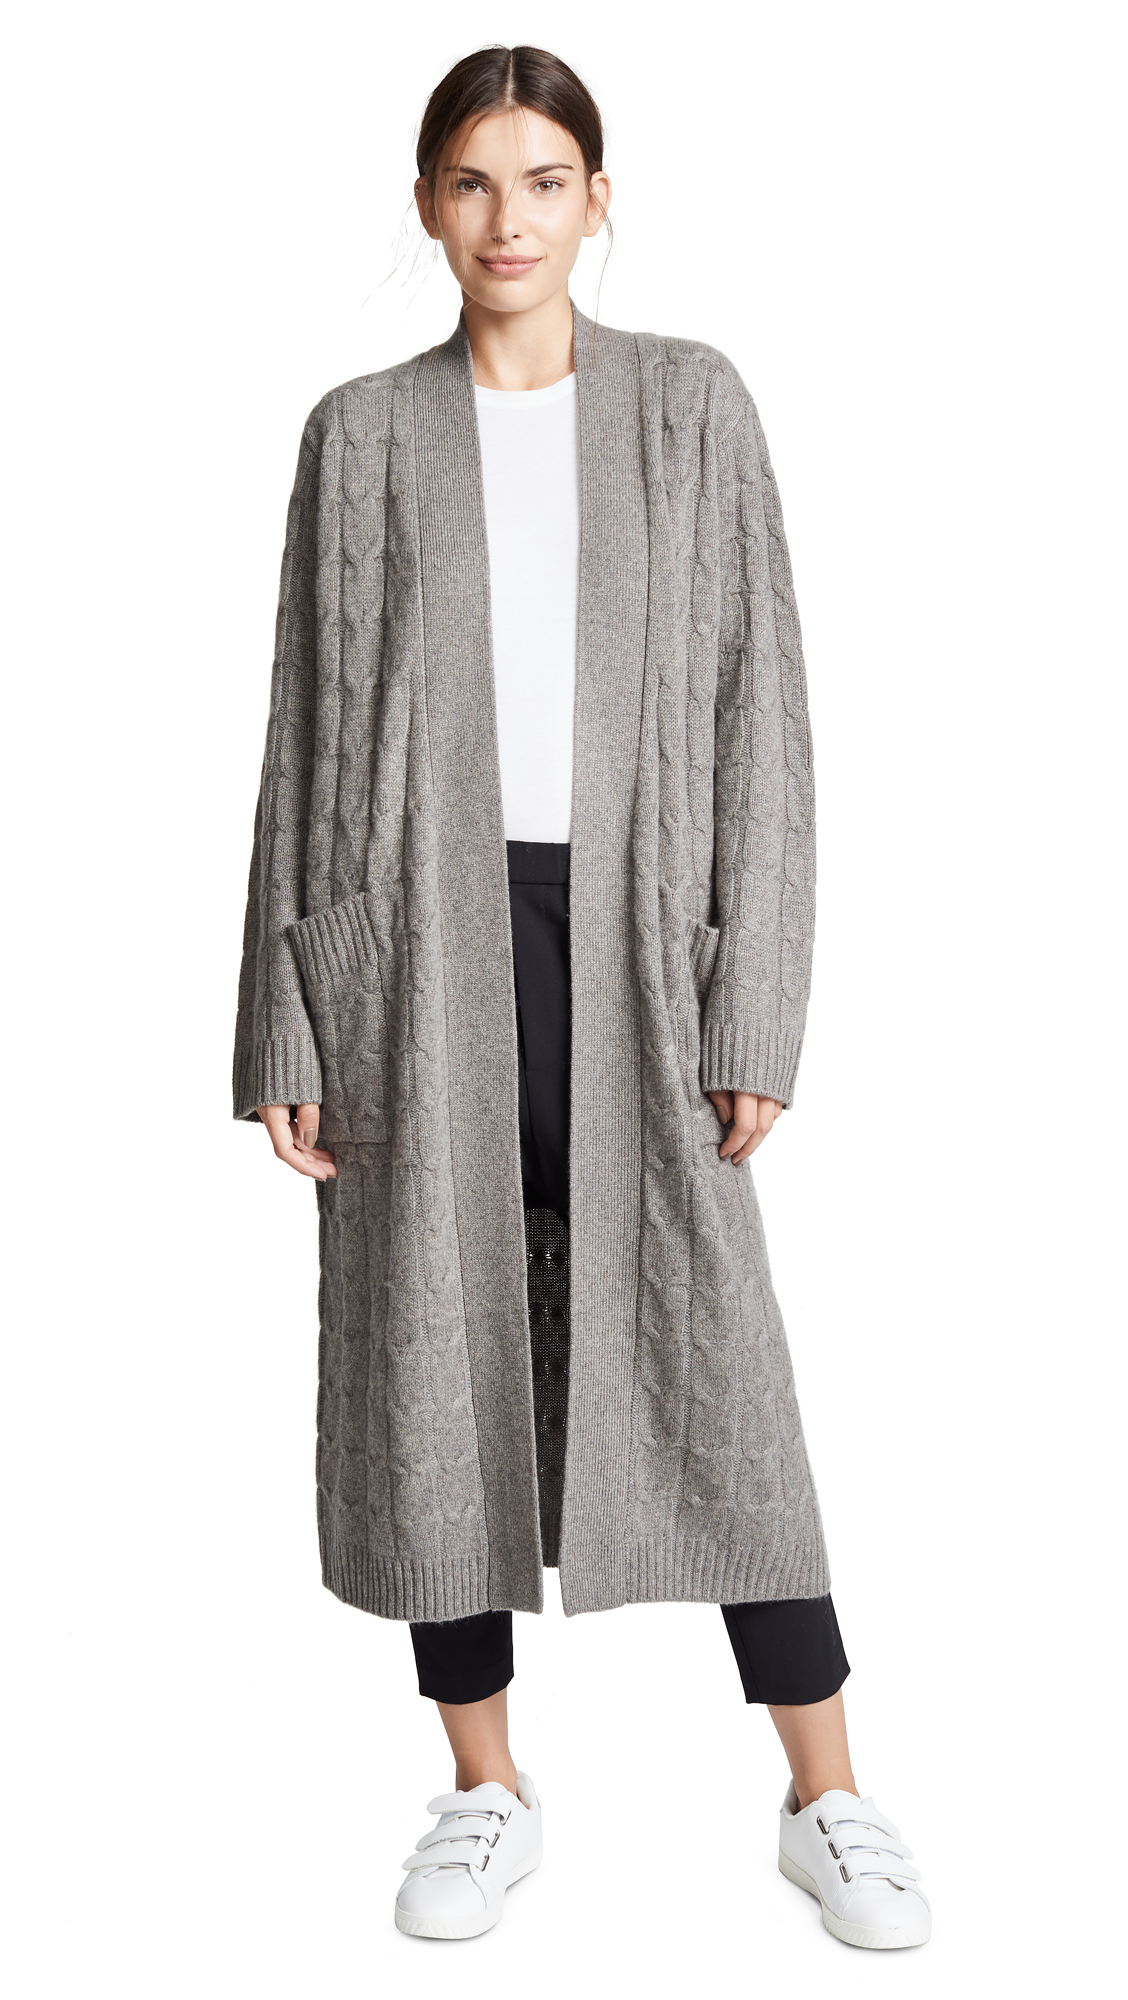 SABLYN VANESSA LONG CASHMERE COAT